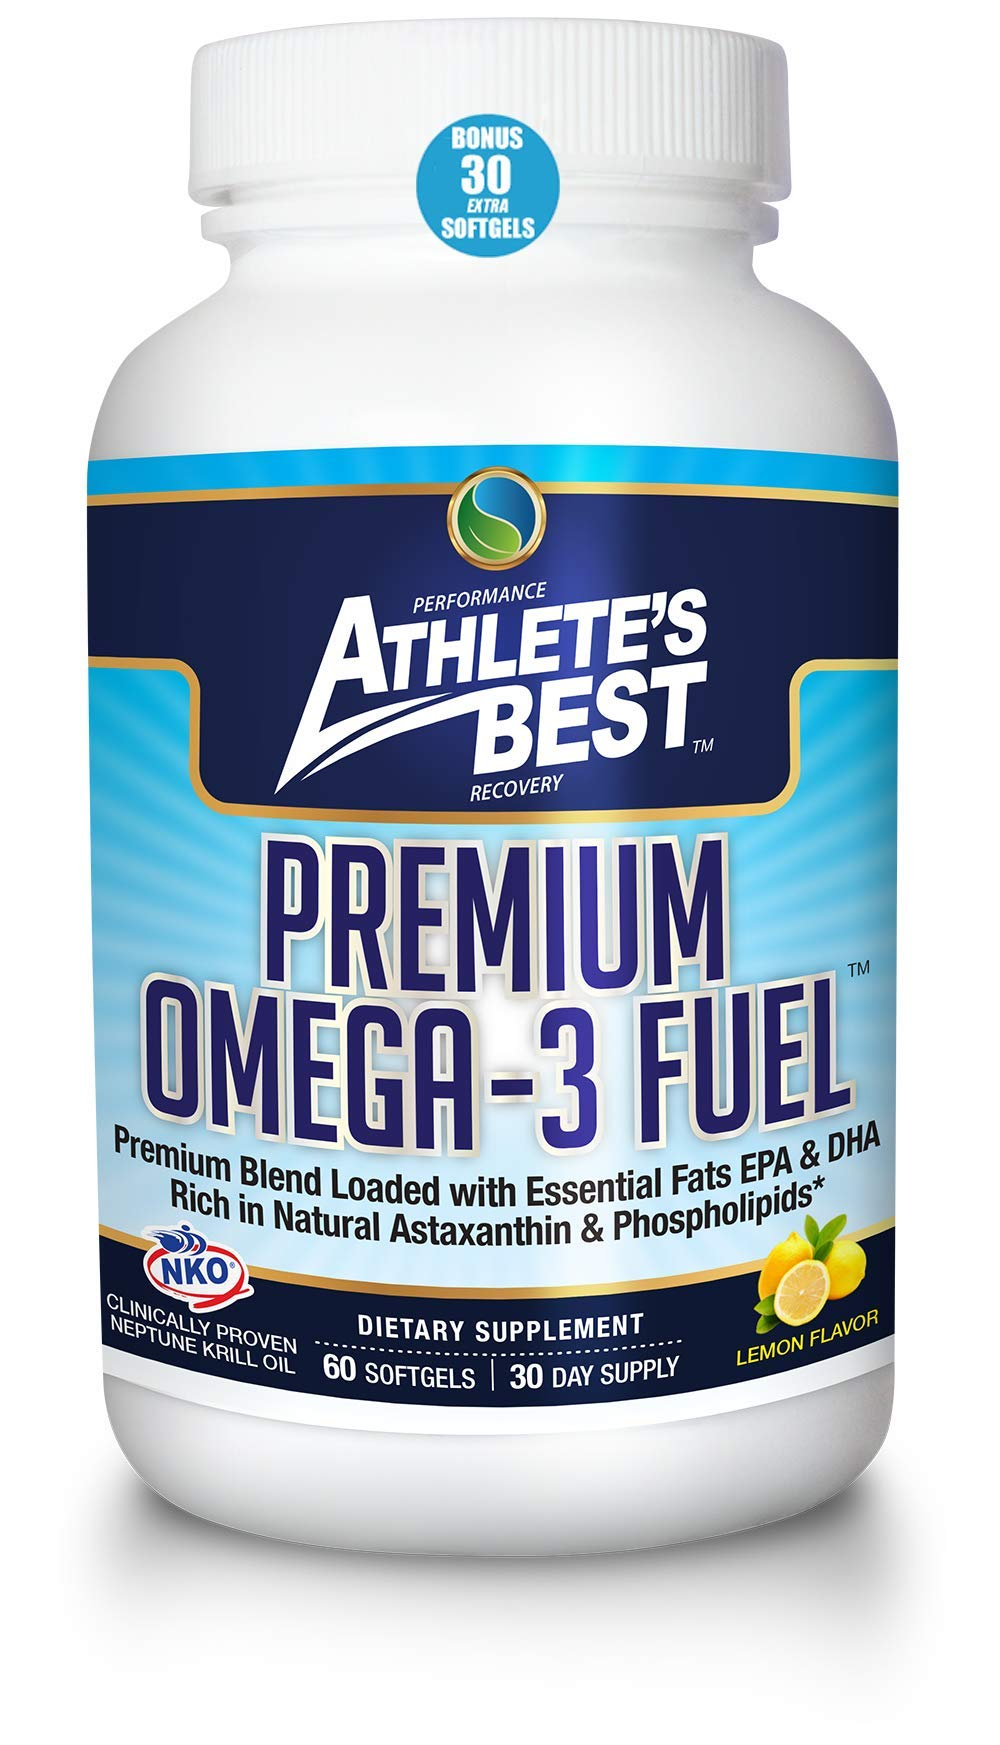 ATHLETE'S BEST Premium Omega-3 Fuel Supplement   2400mg Krill Oil-Astaxanthin-Calamarine-Vitamin D3   EPA+DHA Omega 3s   Highest Quality & Clinically Proven Ingredients by Athlete's Best